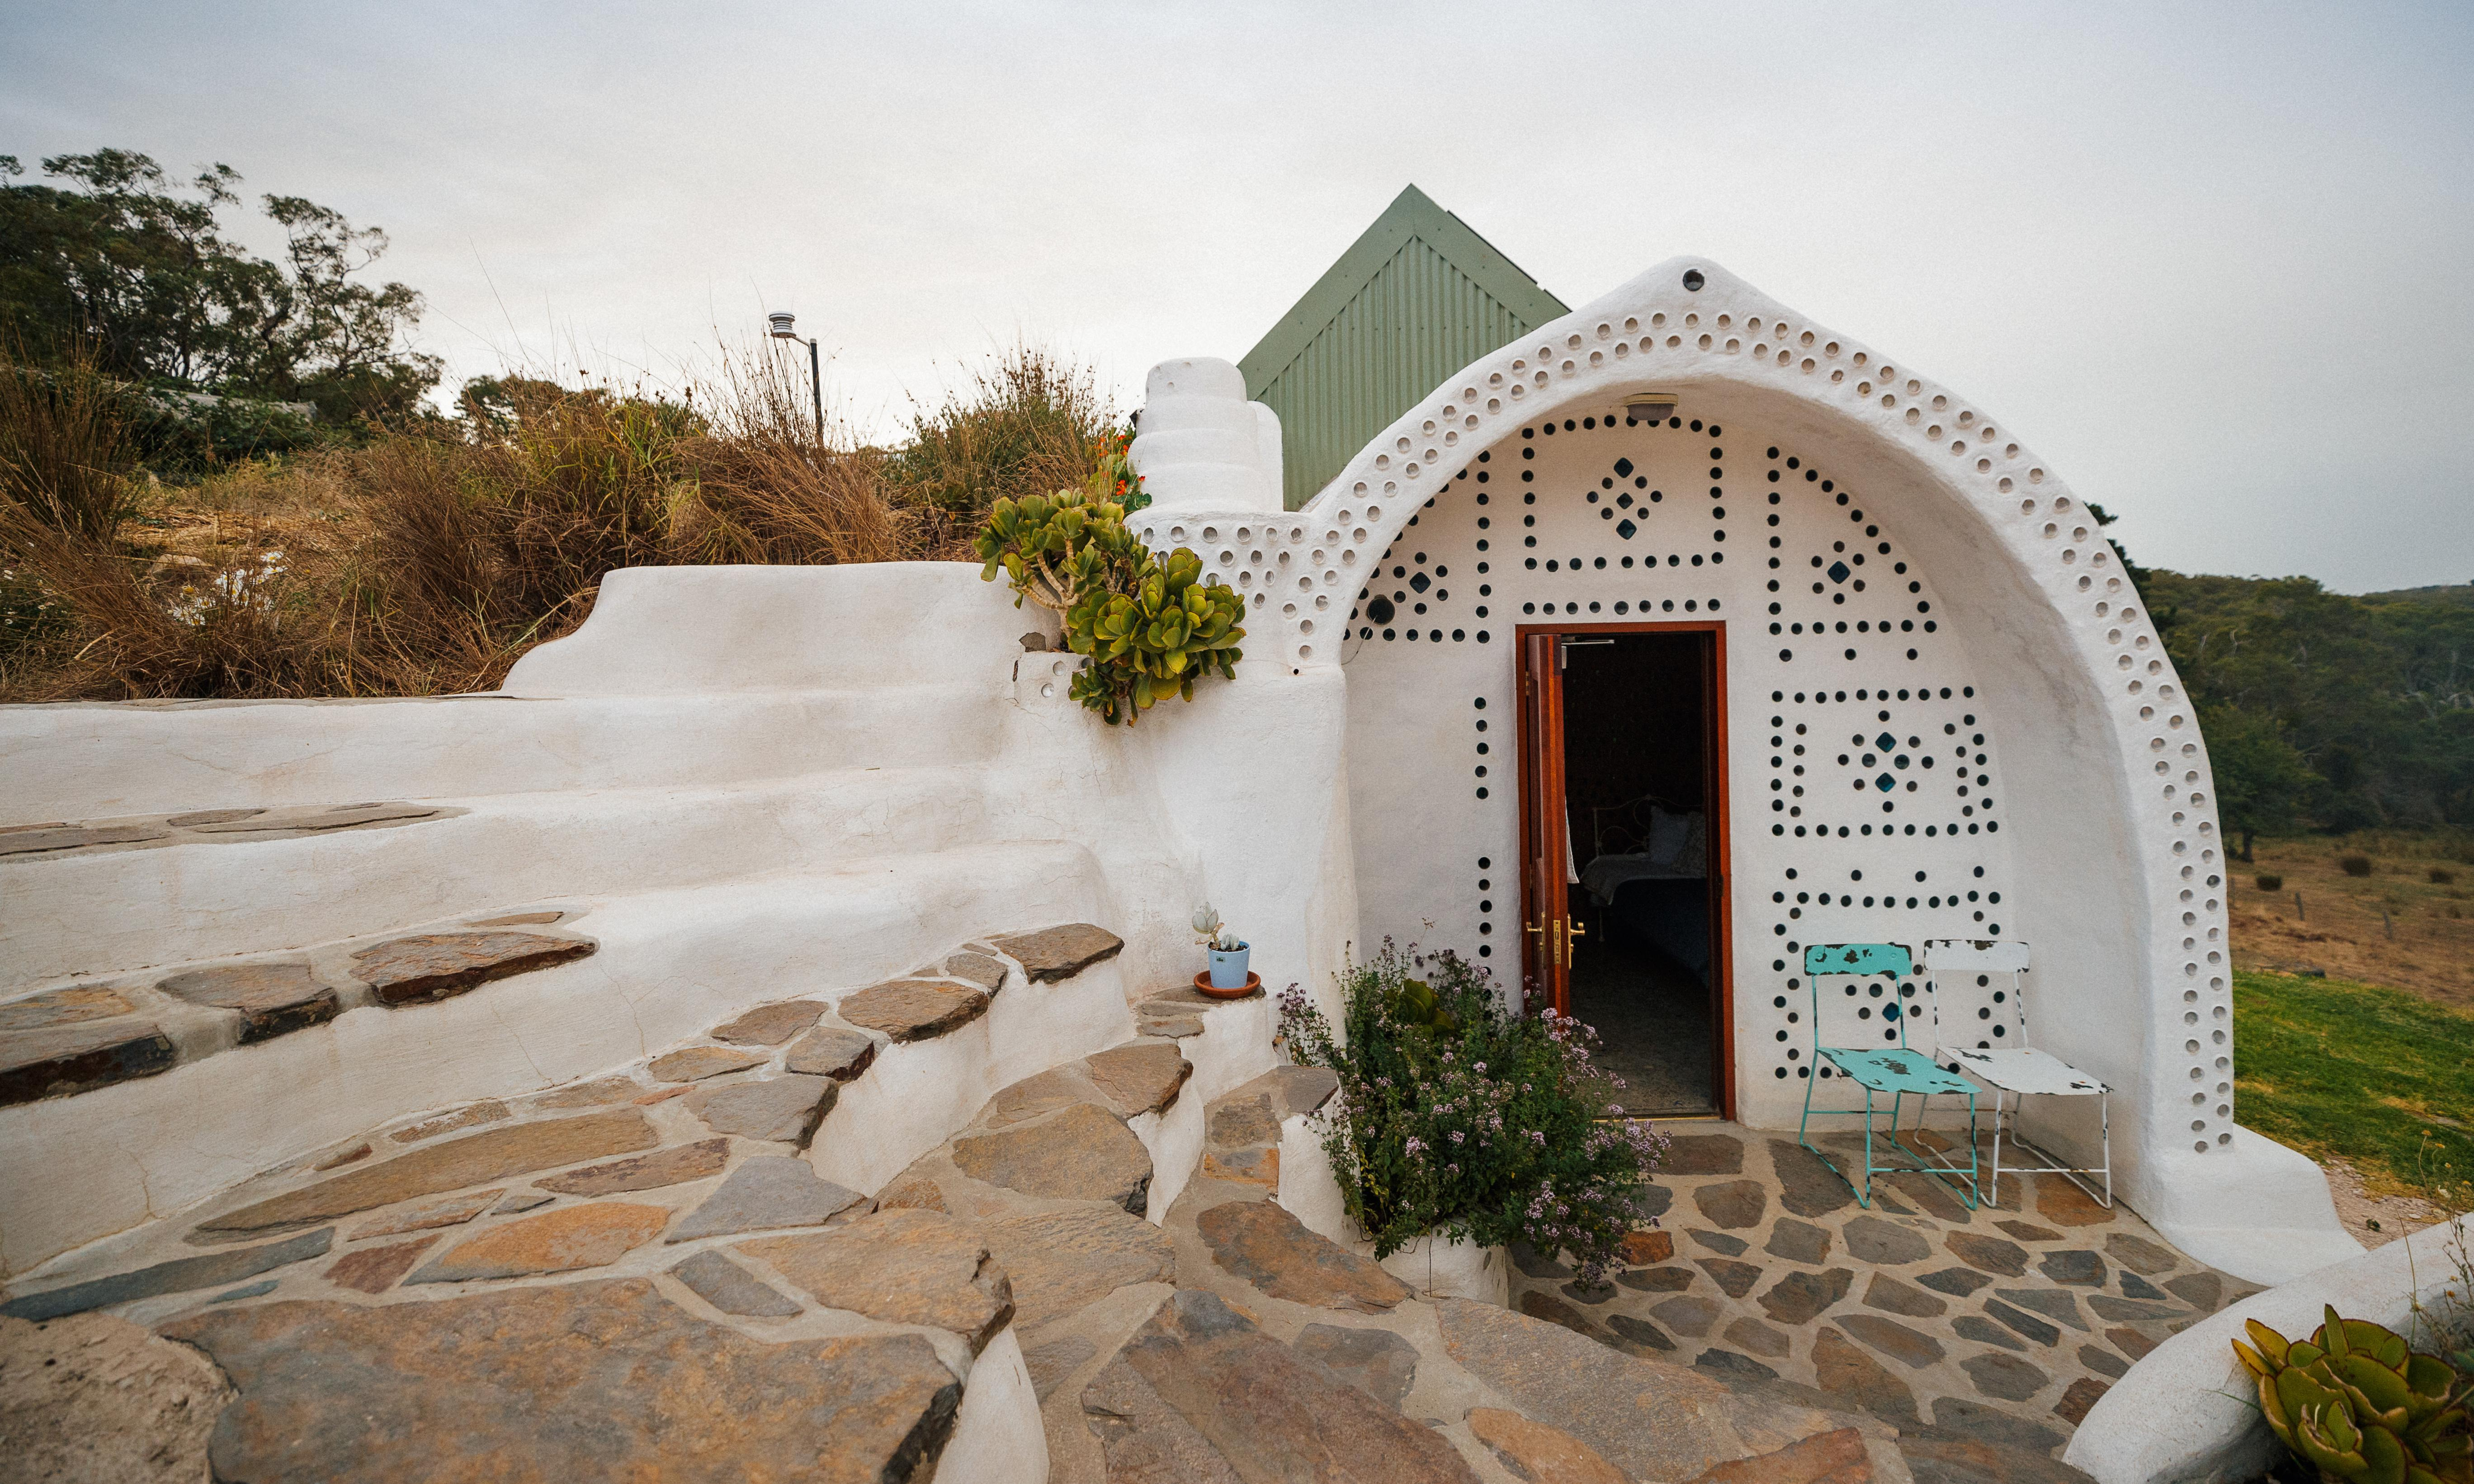 Earthships, hemp and hay: the houses built for off-grid living